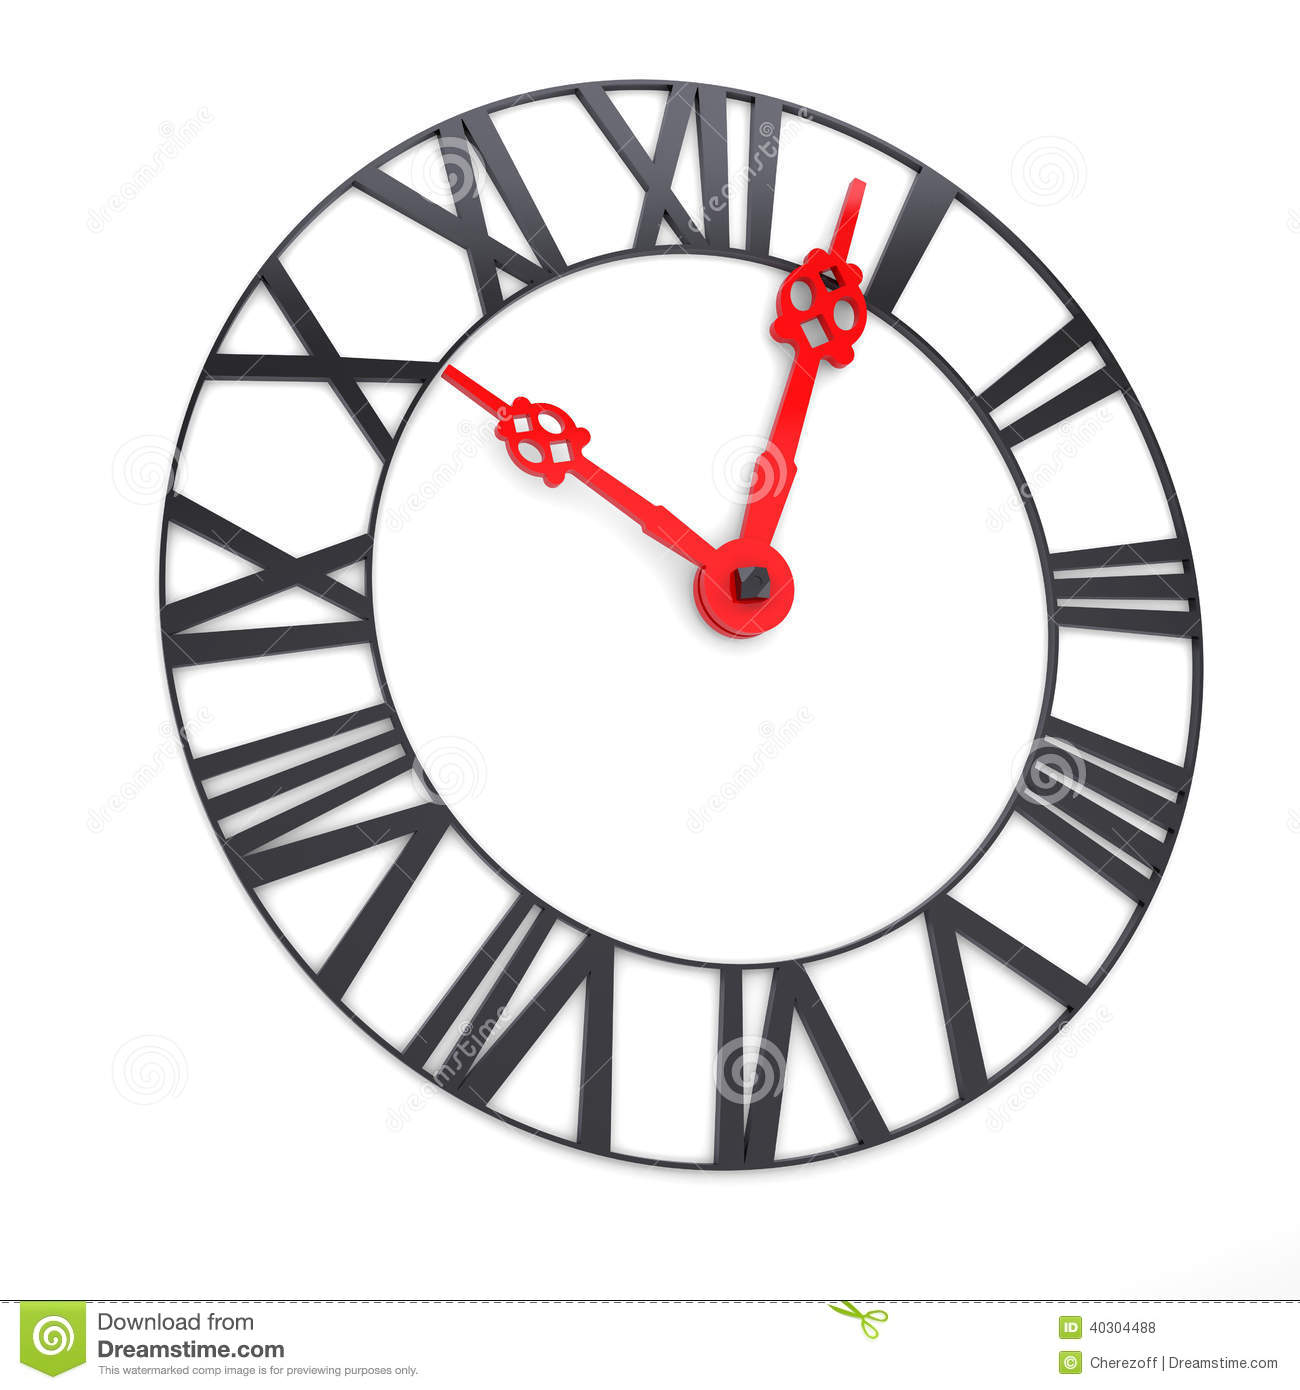 Clock Face With Roman Numerals Stock Photo